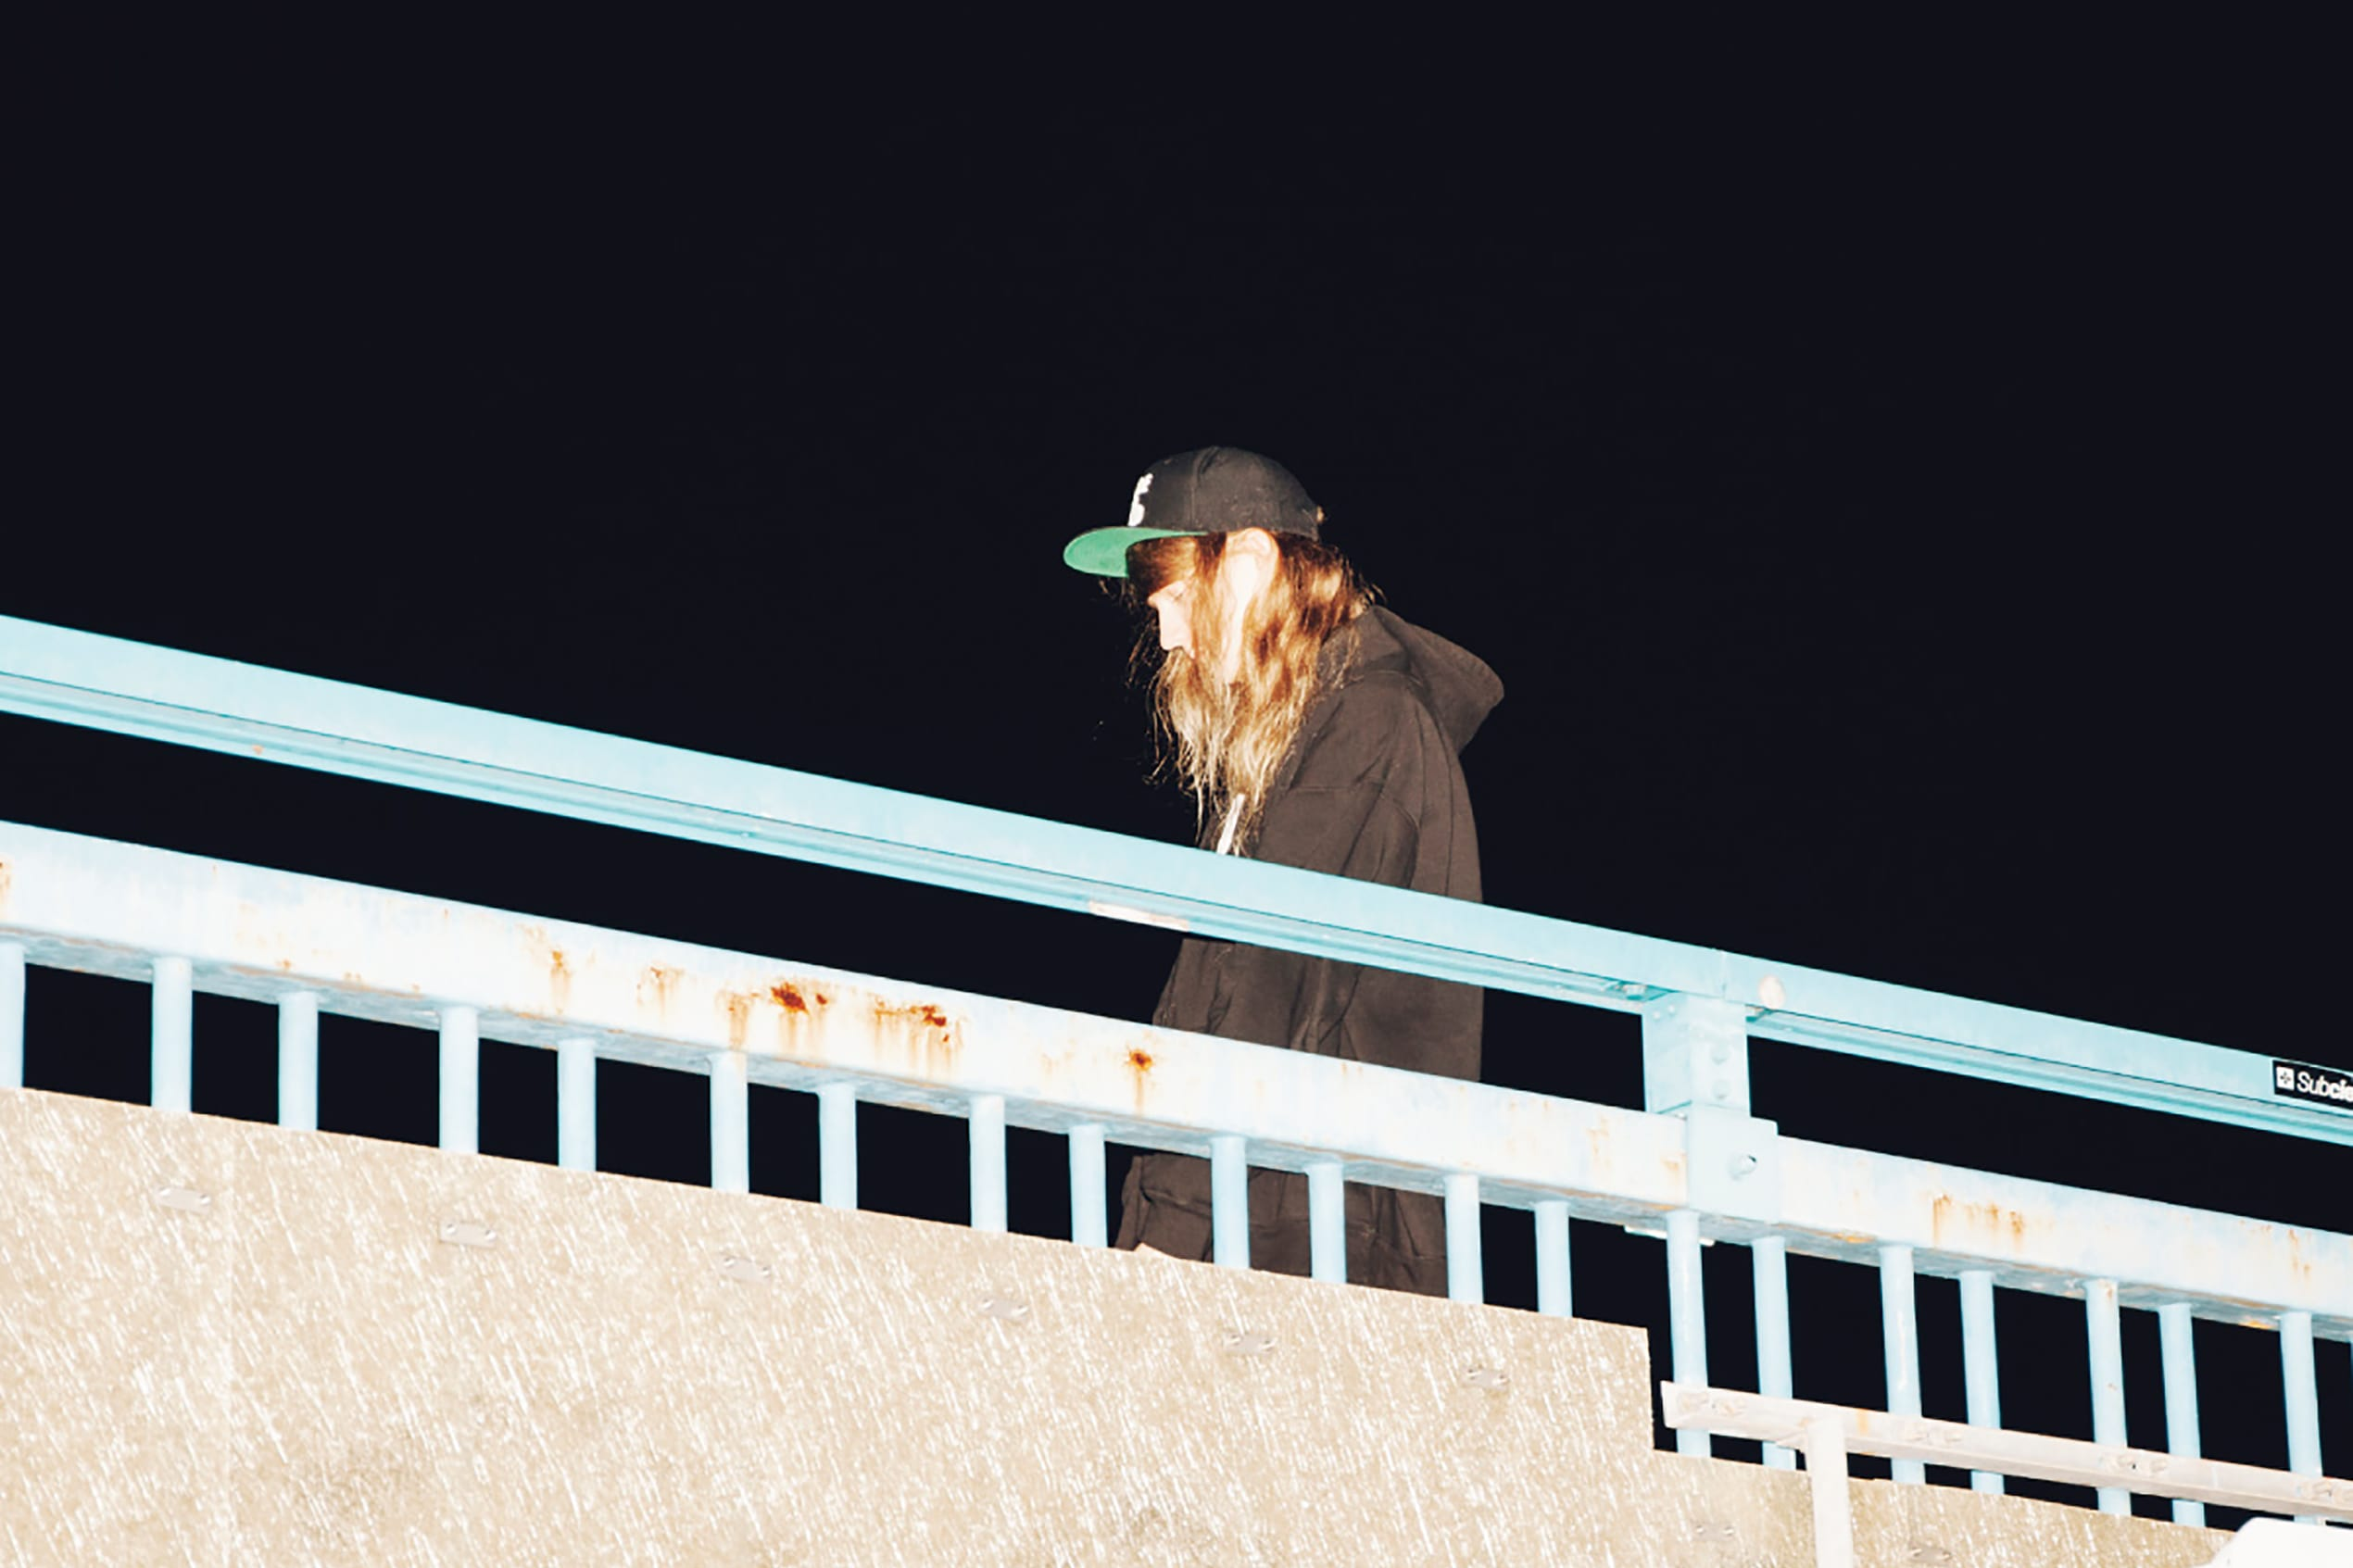 Musician Cashmere Cat is pictured at night walking across a bridge in Reykjavik, wearing a black hat and hoodie